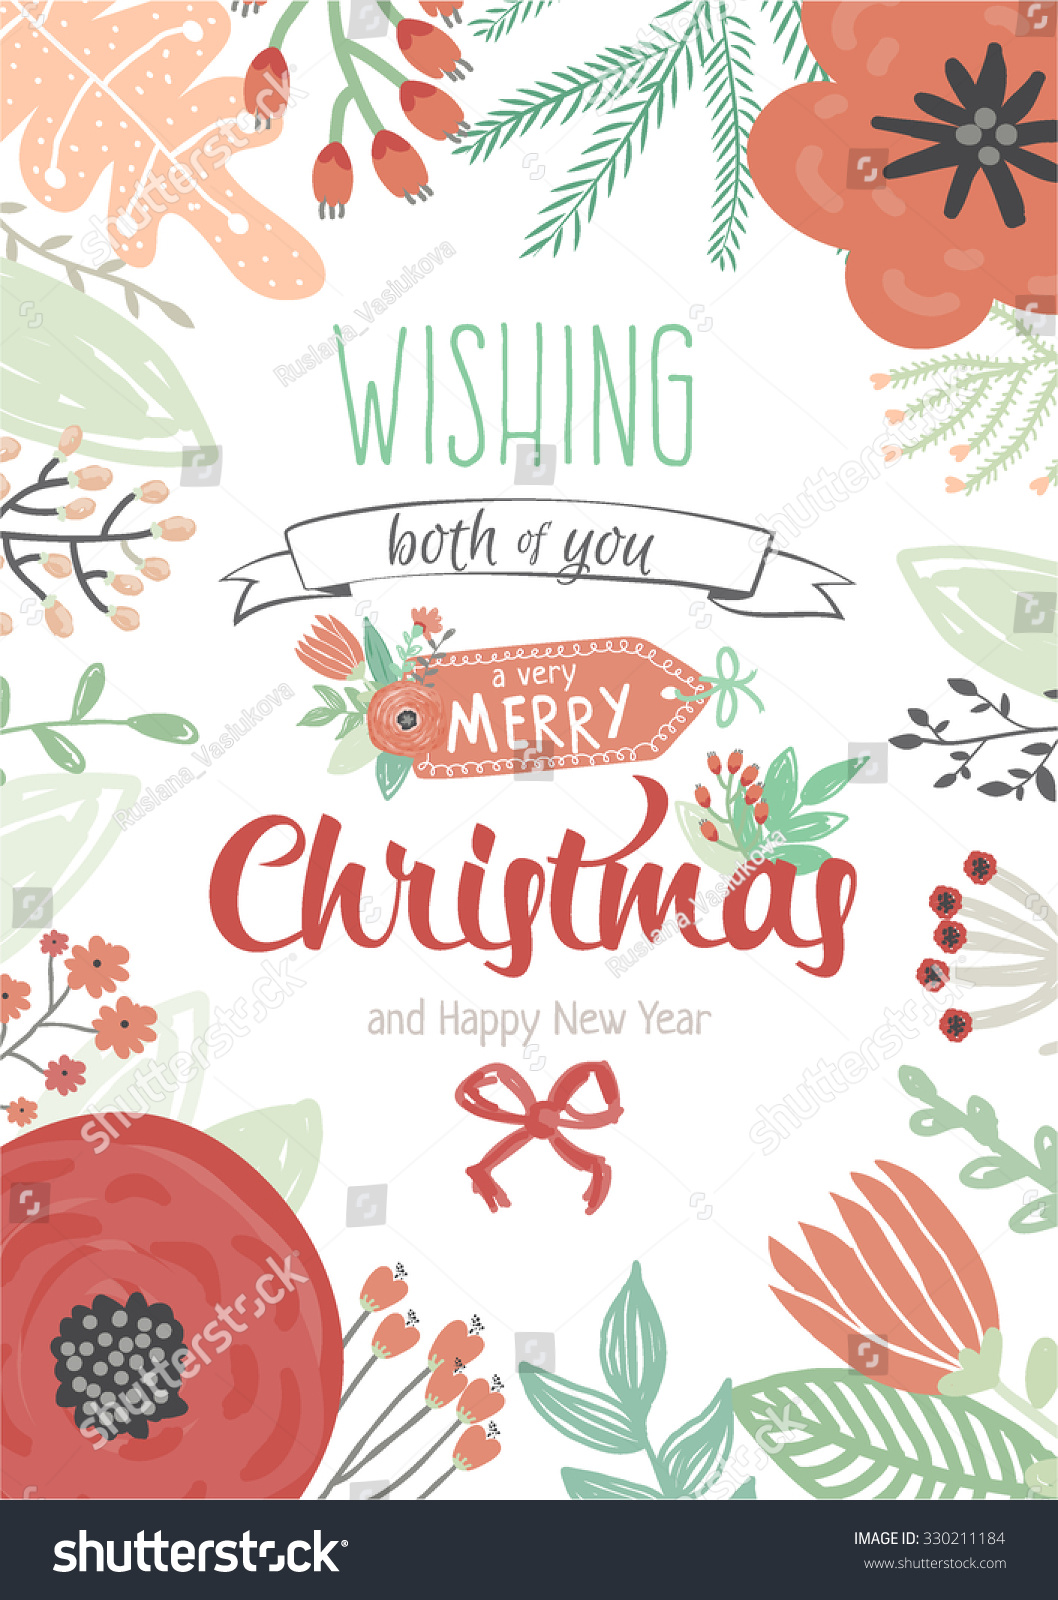 Vintage Merry Christmas Happy New Year Stock Vector 330211184